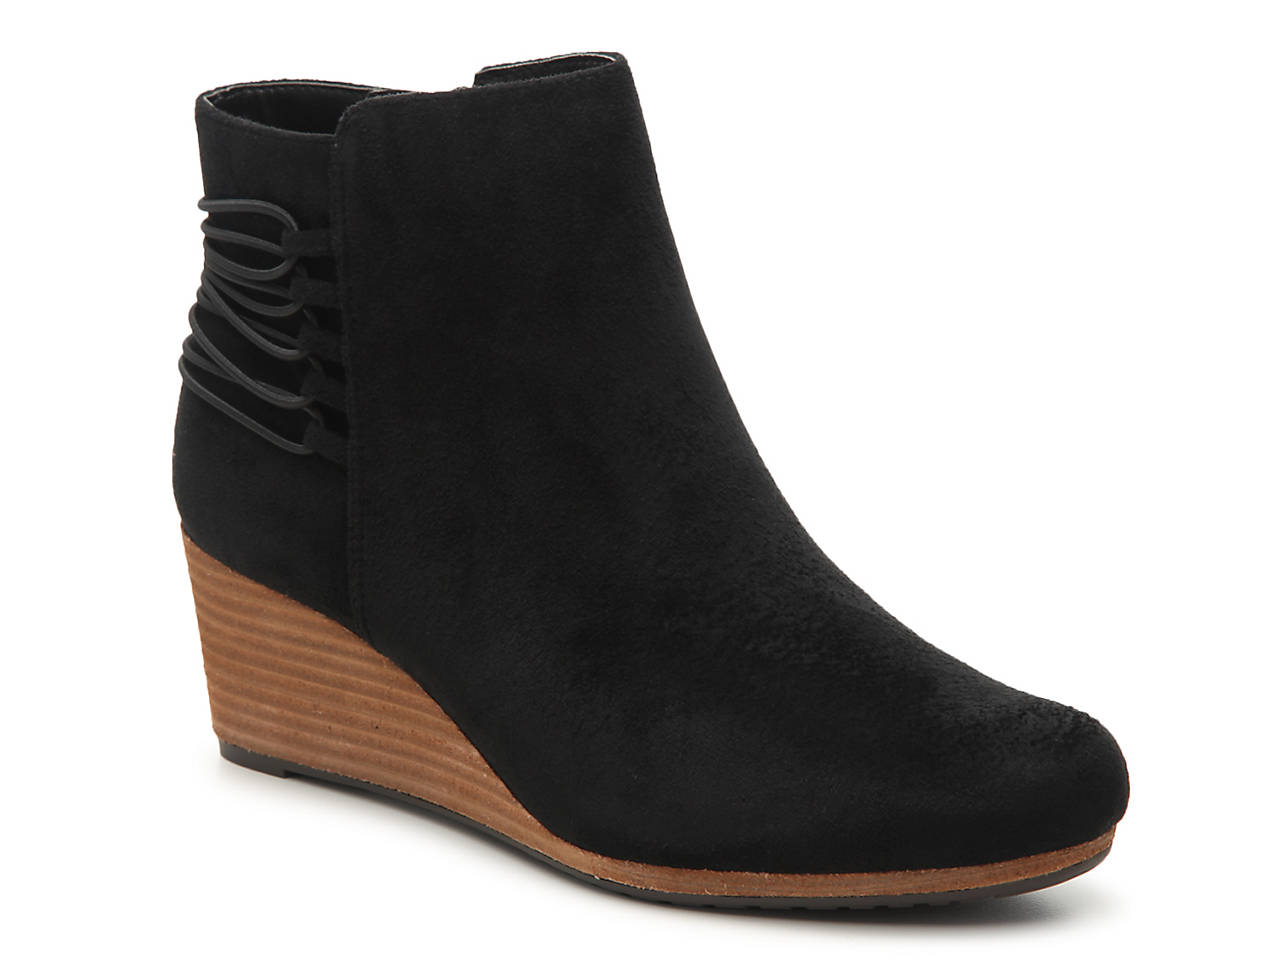 fd9e72bf0fd9 Dr. Scholl s Knoll Wedge Bootie Women s Shoes